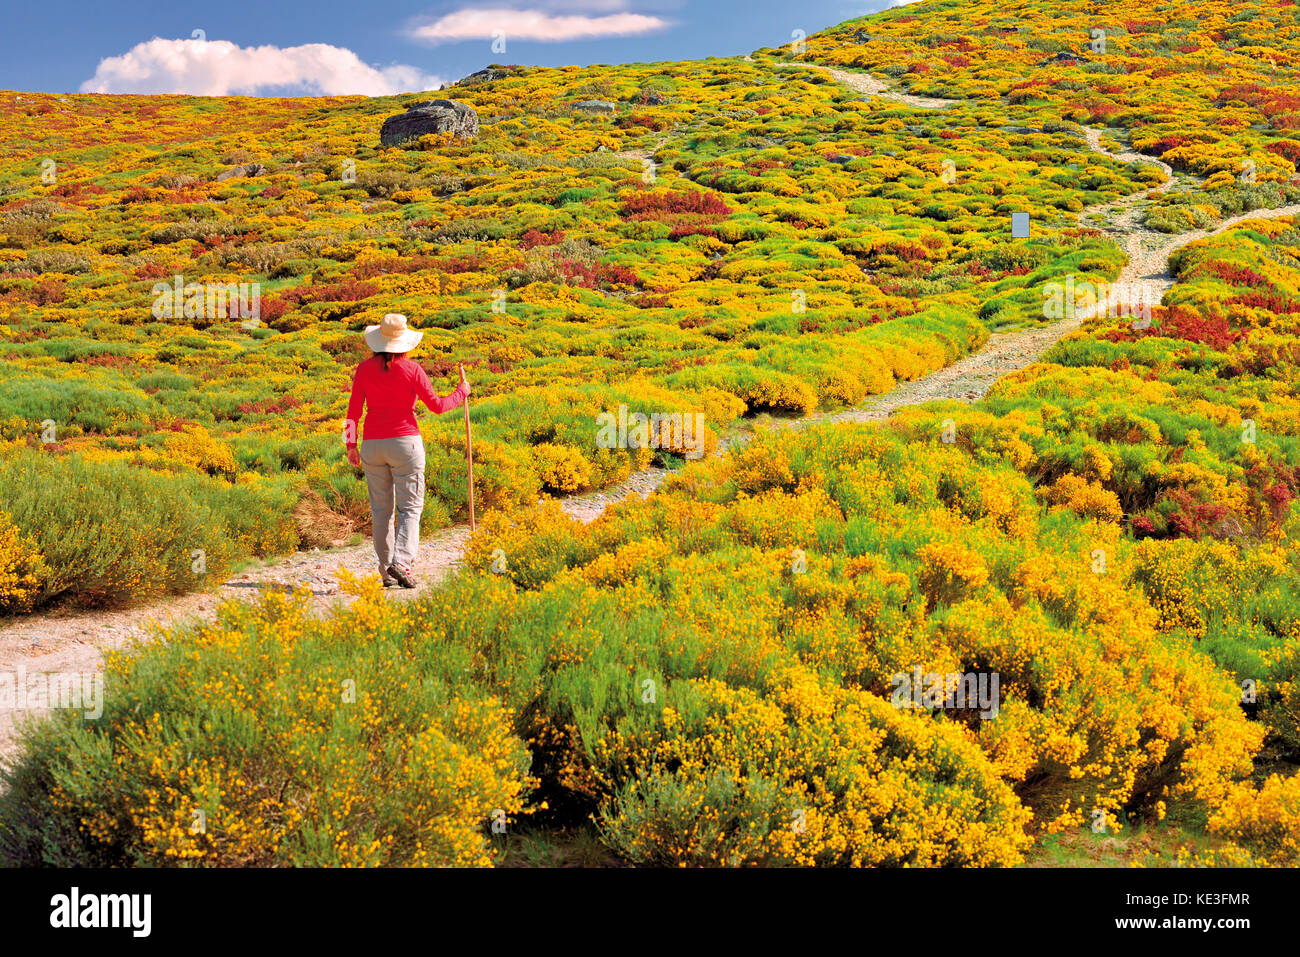 Woman with hat and red t-shirt walking in the middle of yellow flowering mountain vegetation and bushes - Stock Image